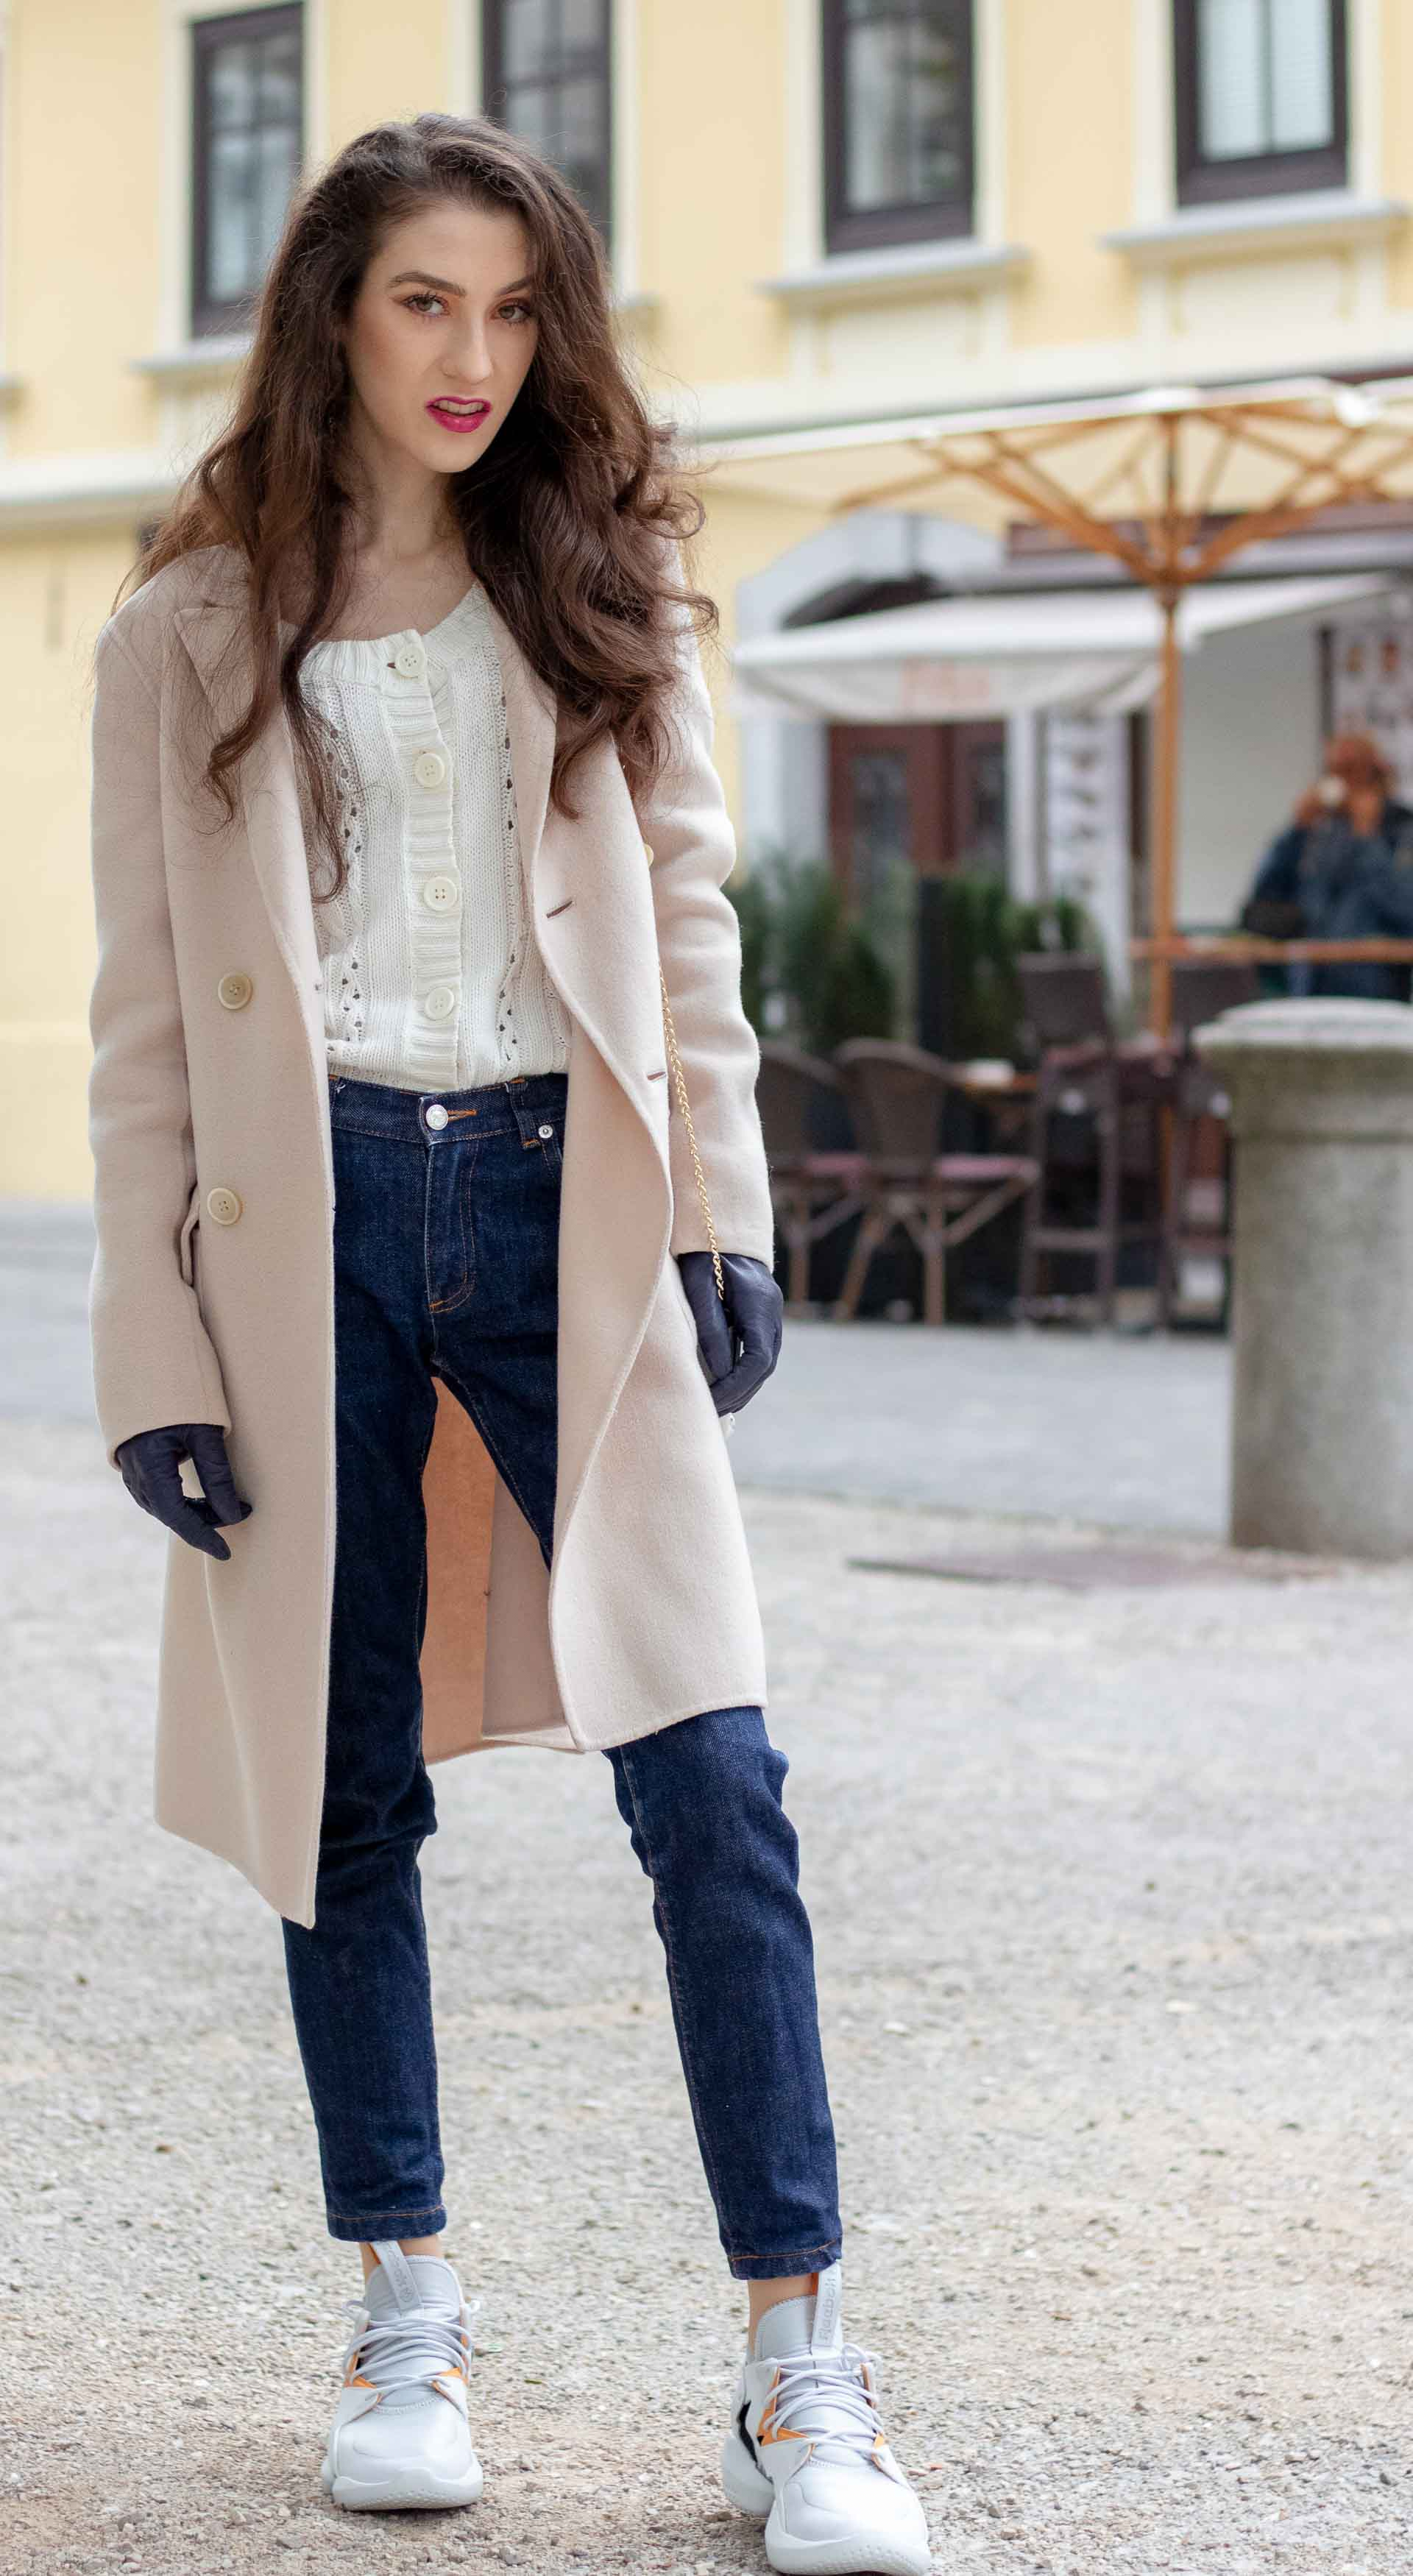 Beautiful Slovenian Fashion Blogger Veronika Lipar of Brunette from Wall dressed in white Mango cardigan tucked into A.P.C. dark blue denim jeans, Weekend Max Mara coat, Reebok instapump sneakers in fall